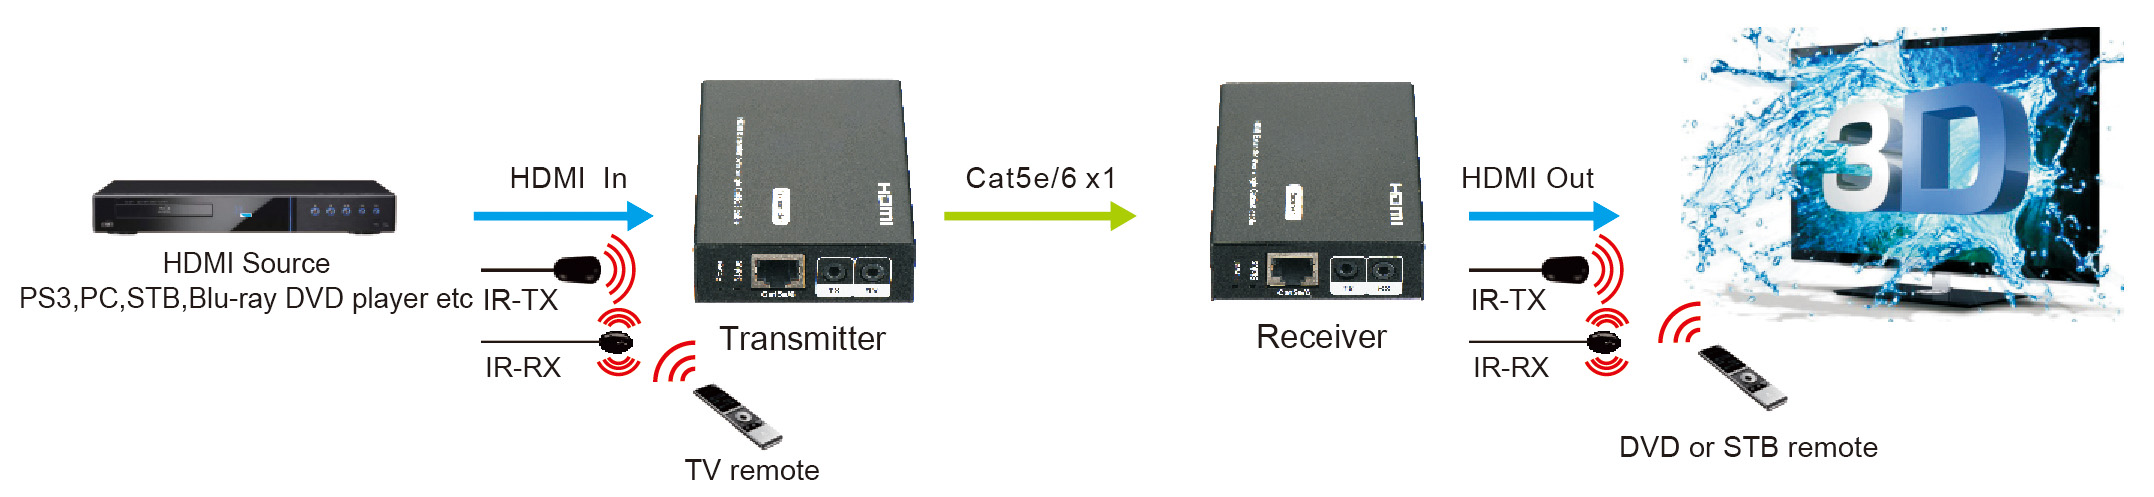 Foxtel Wiring Diagram 21 Images Diagrams Cat6 Straight Through 07351044 Wiringdiagram Pro2 Hdc6edid Hdmi Over Single Extender With Ir At Cita